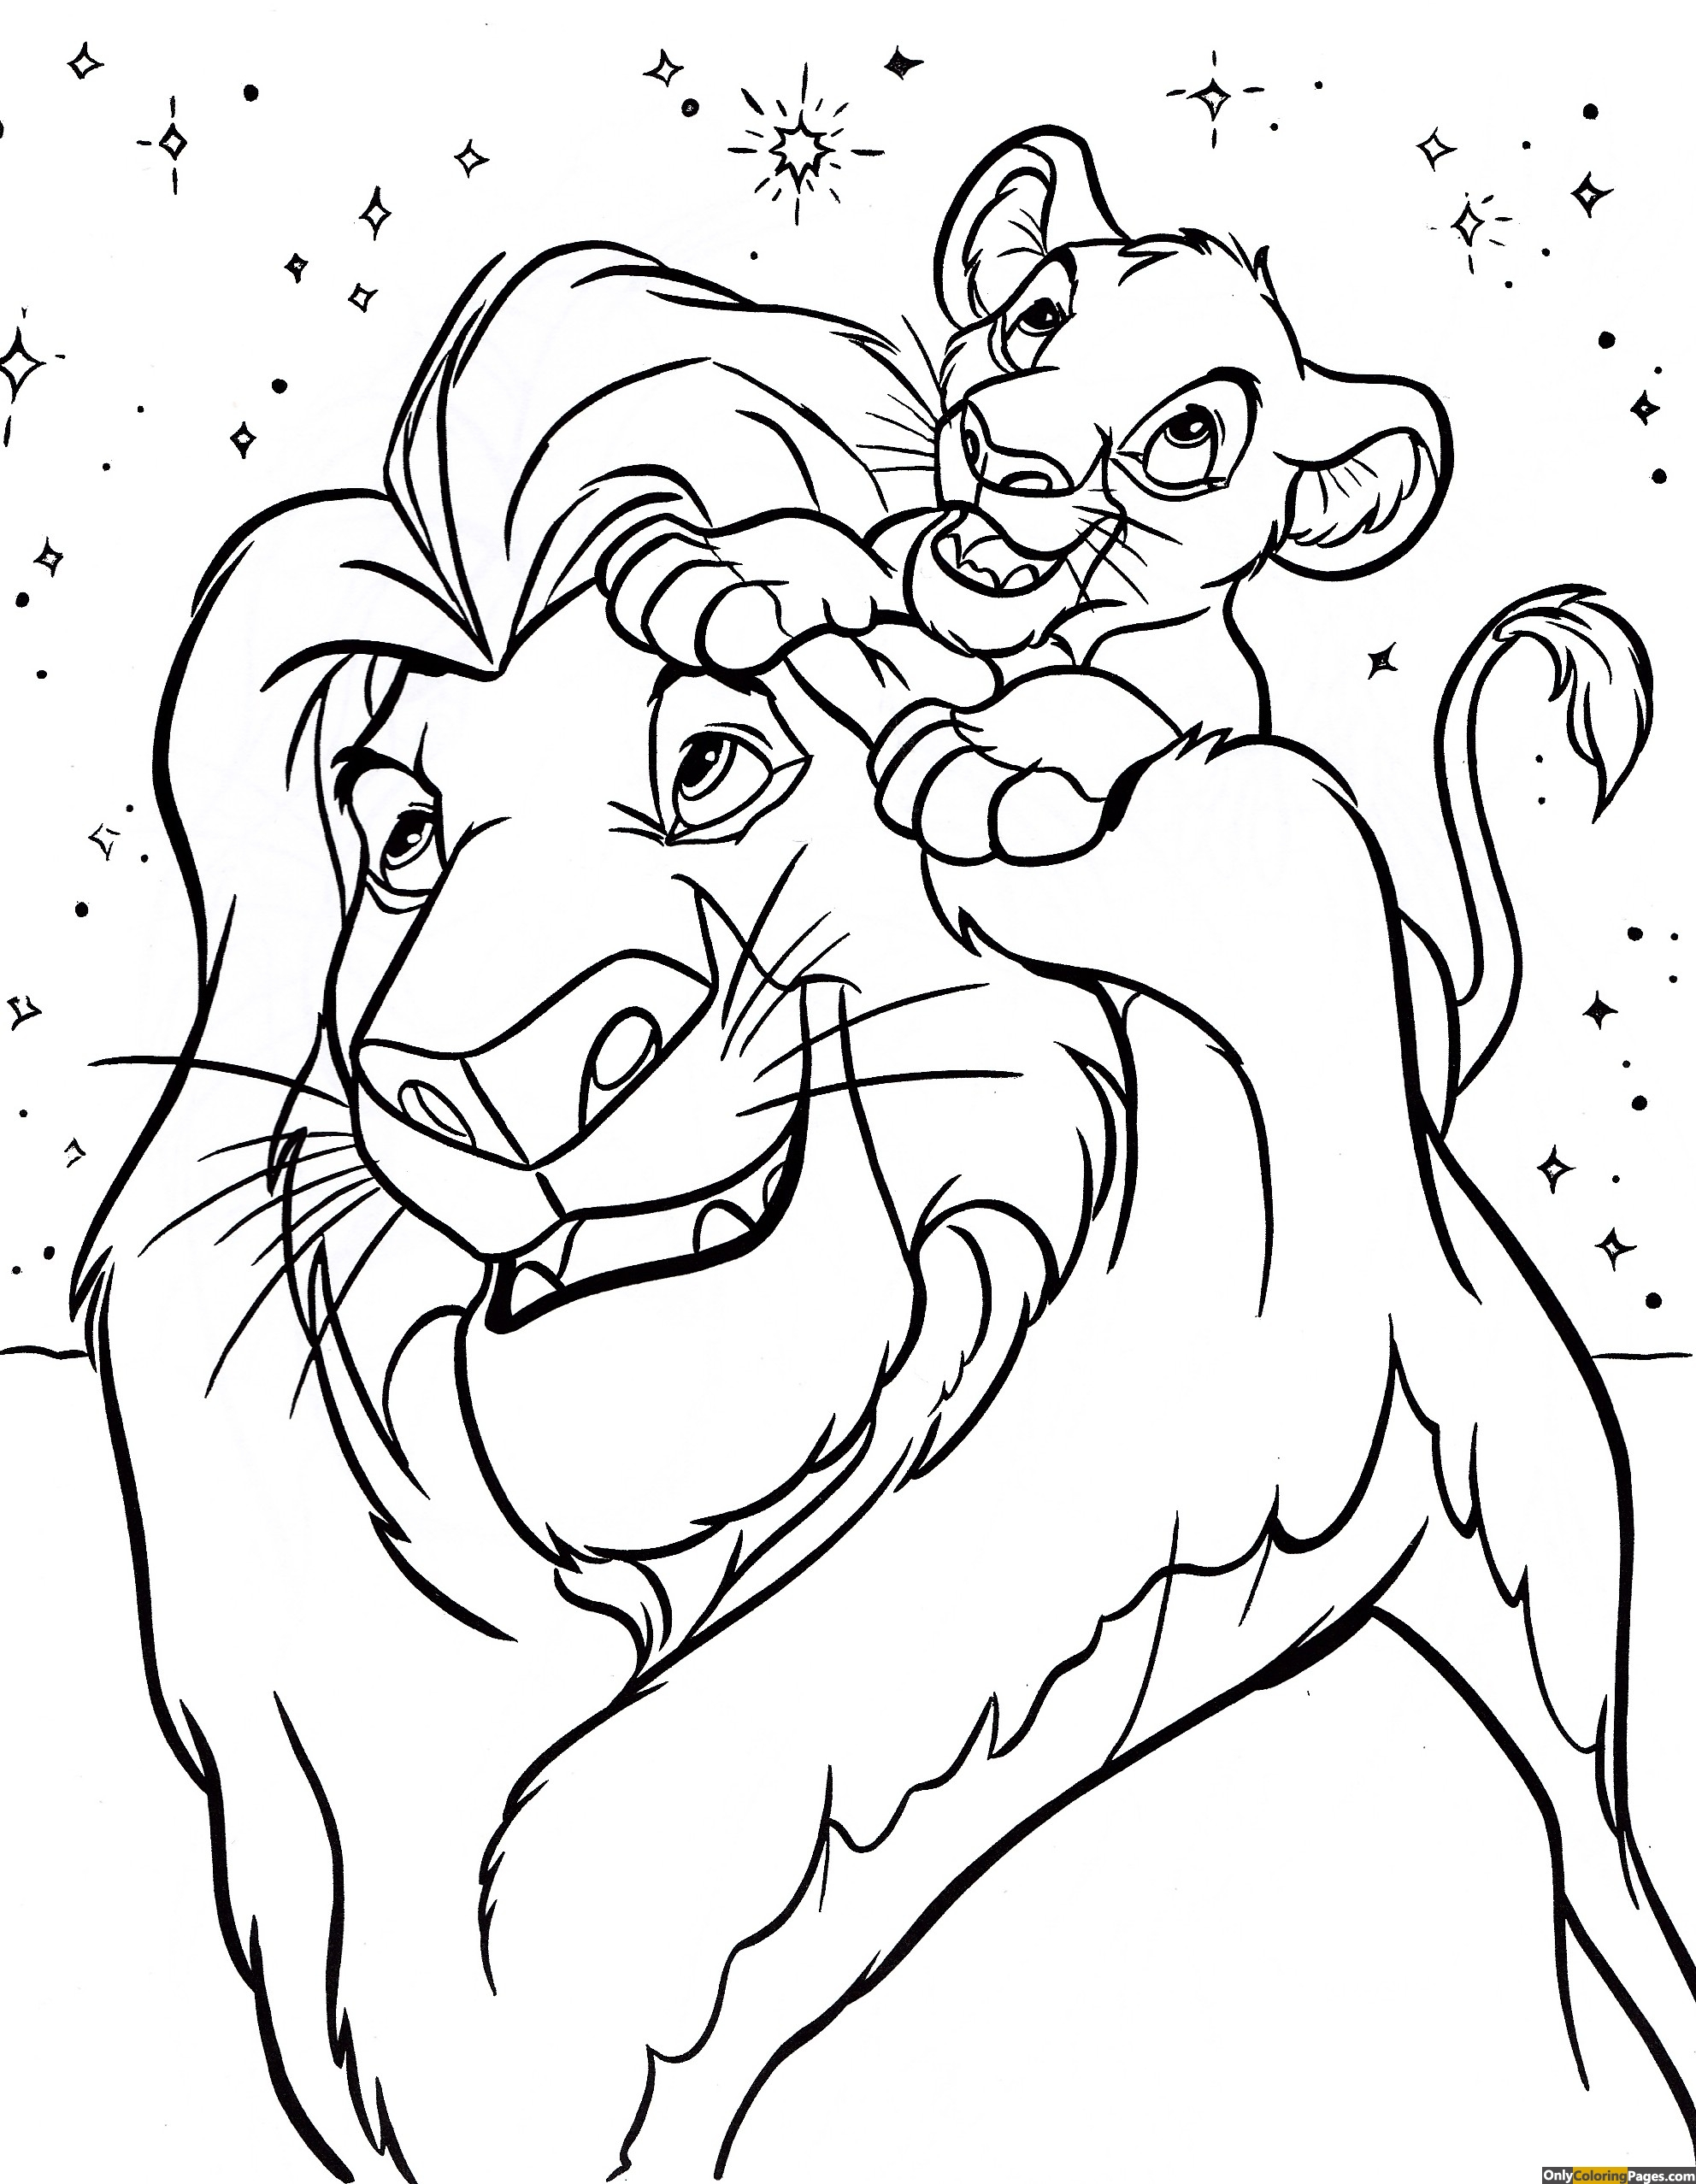 Disney coloring pages lion king only coloring pages for Disney lion king coloring pages